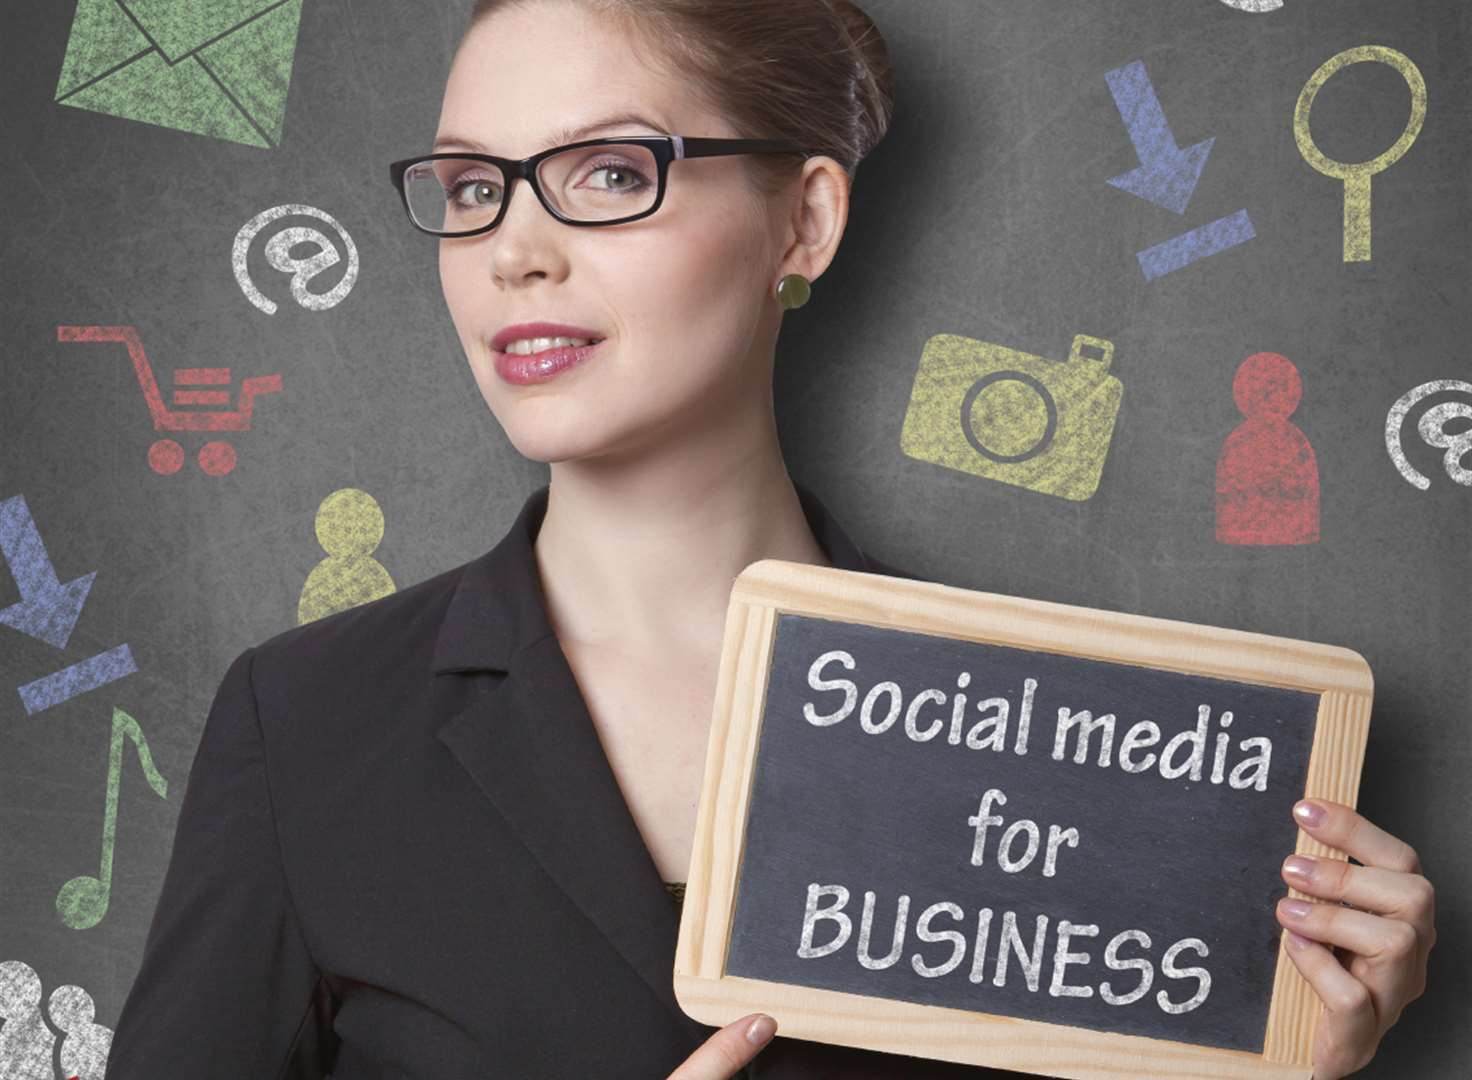 Supercharge your business with social media